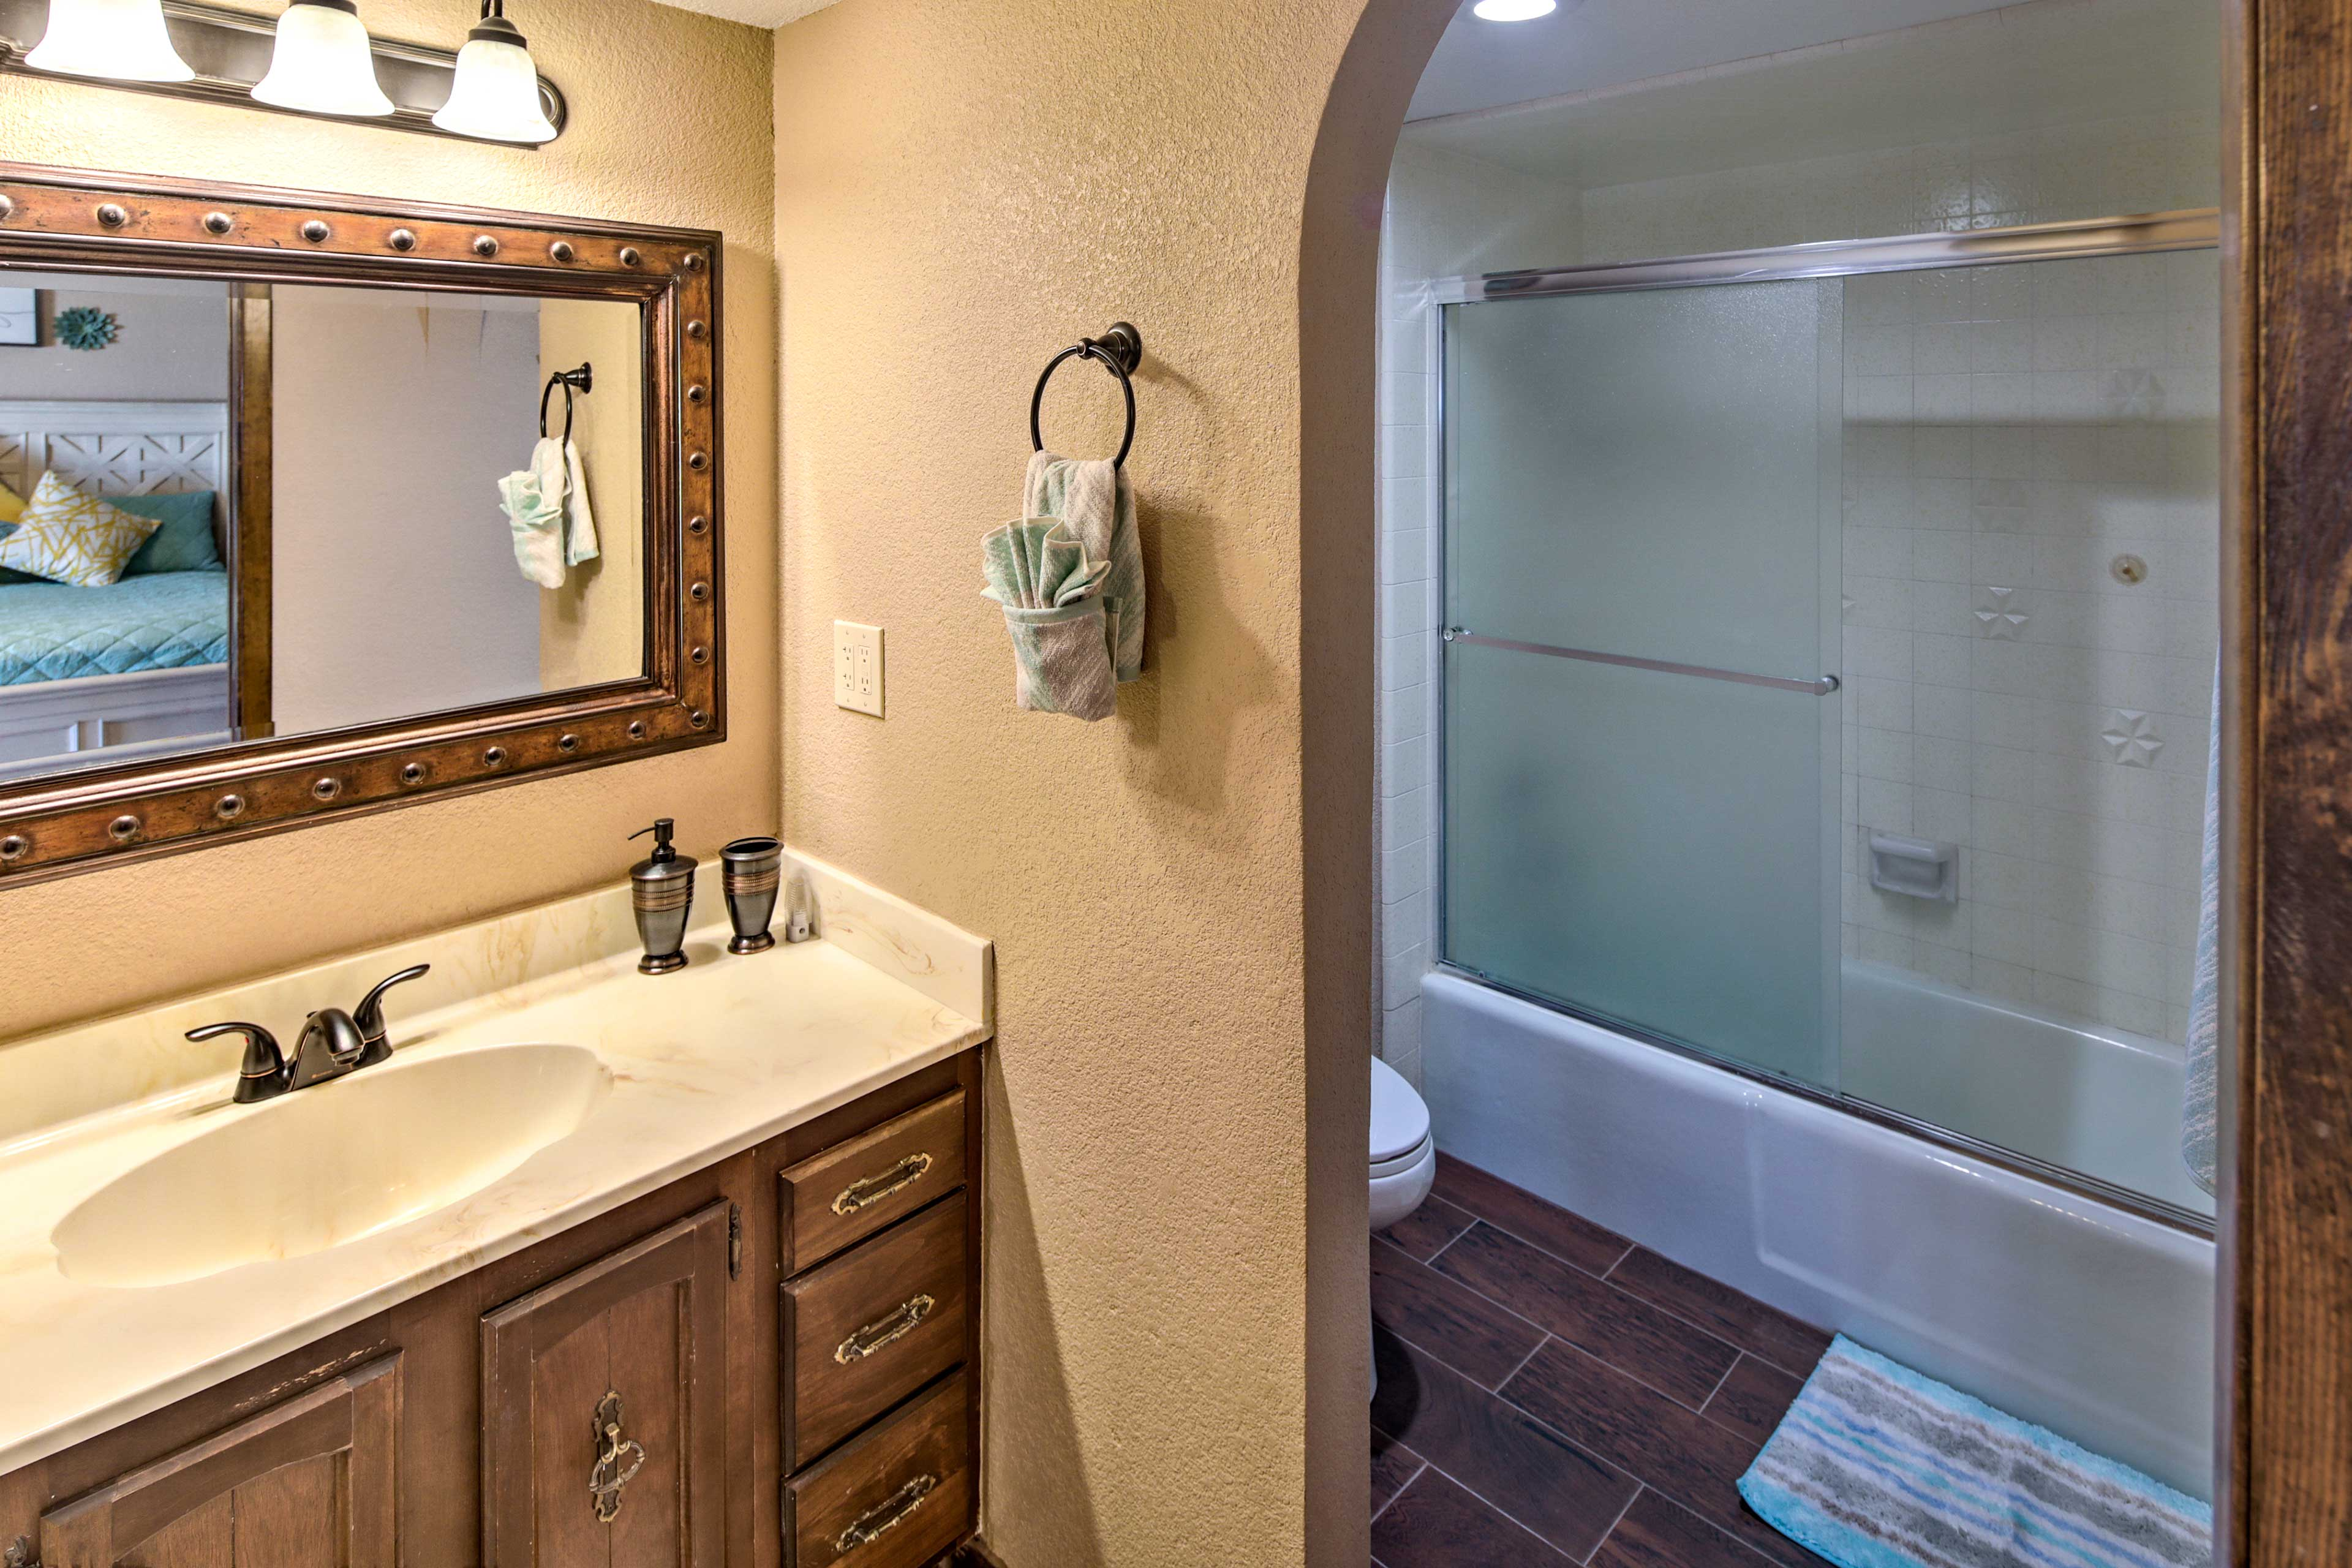 Freshen up in the privacy of your own shower.